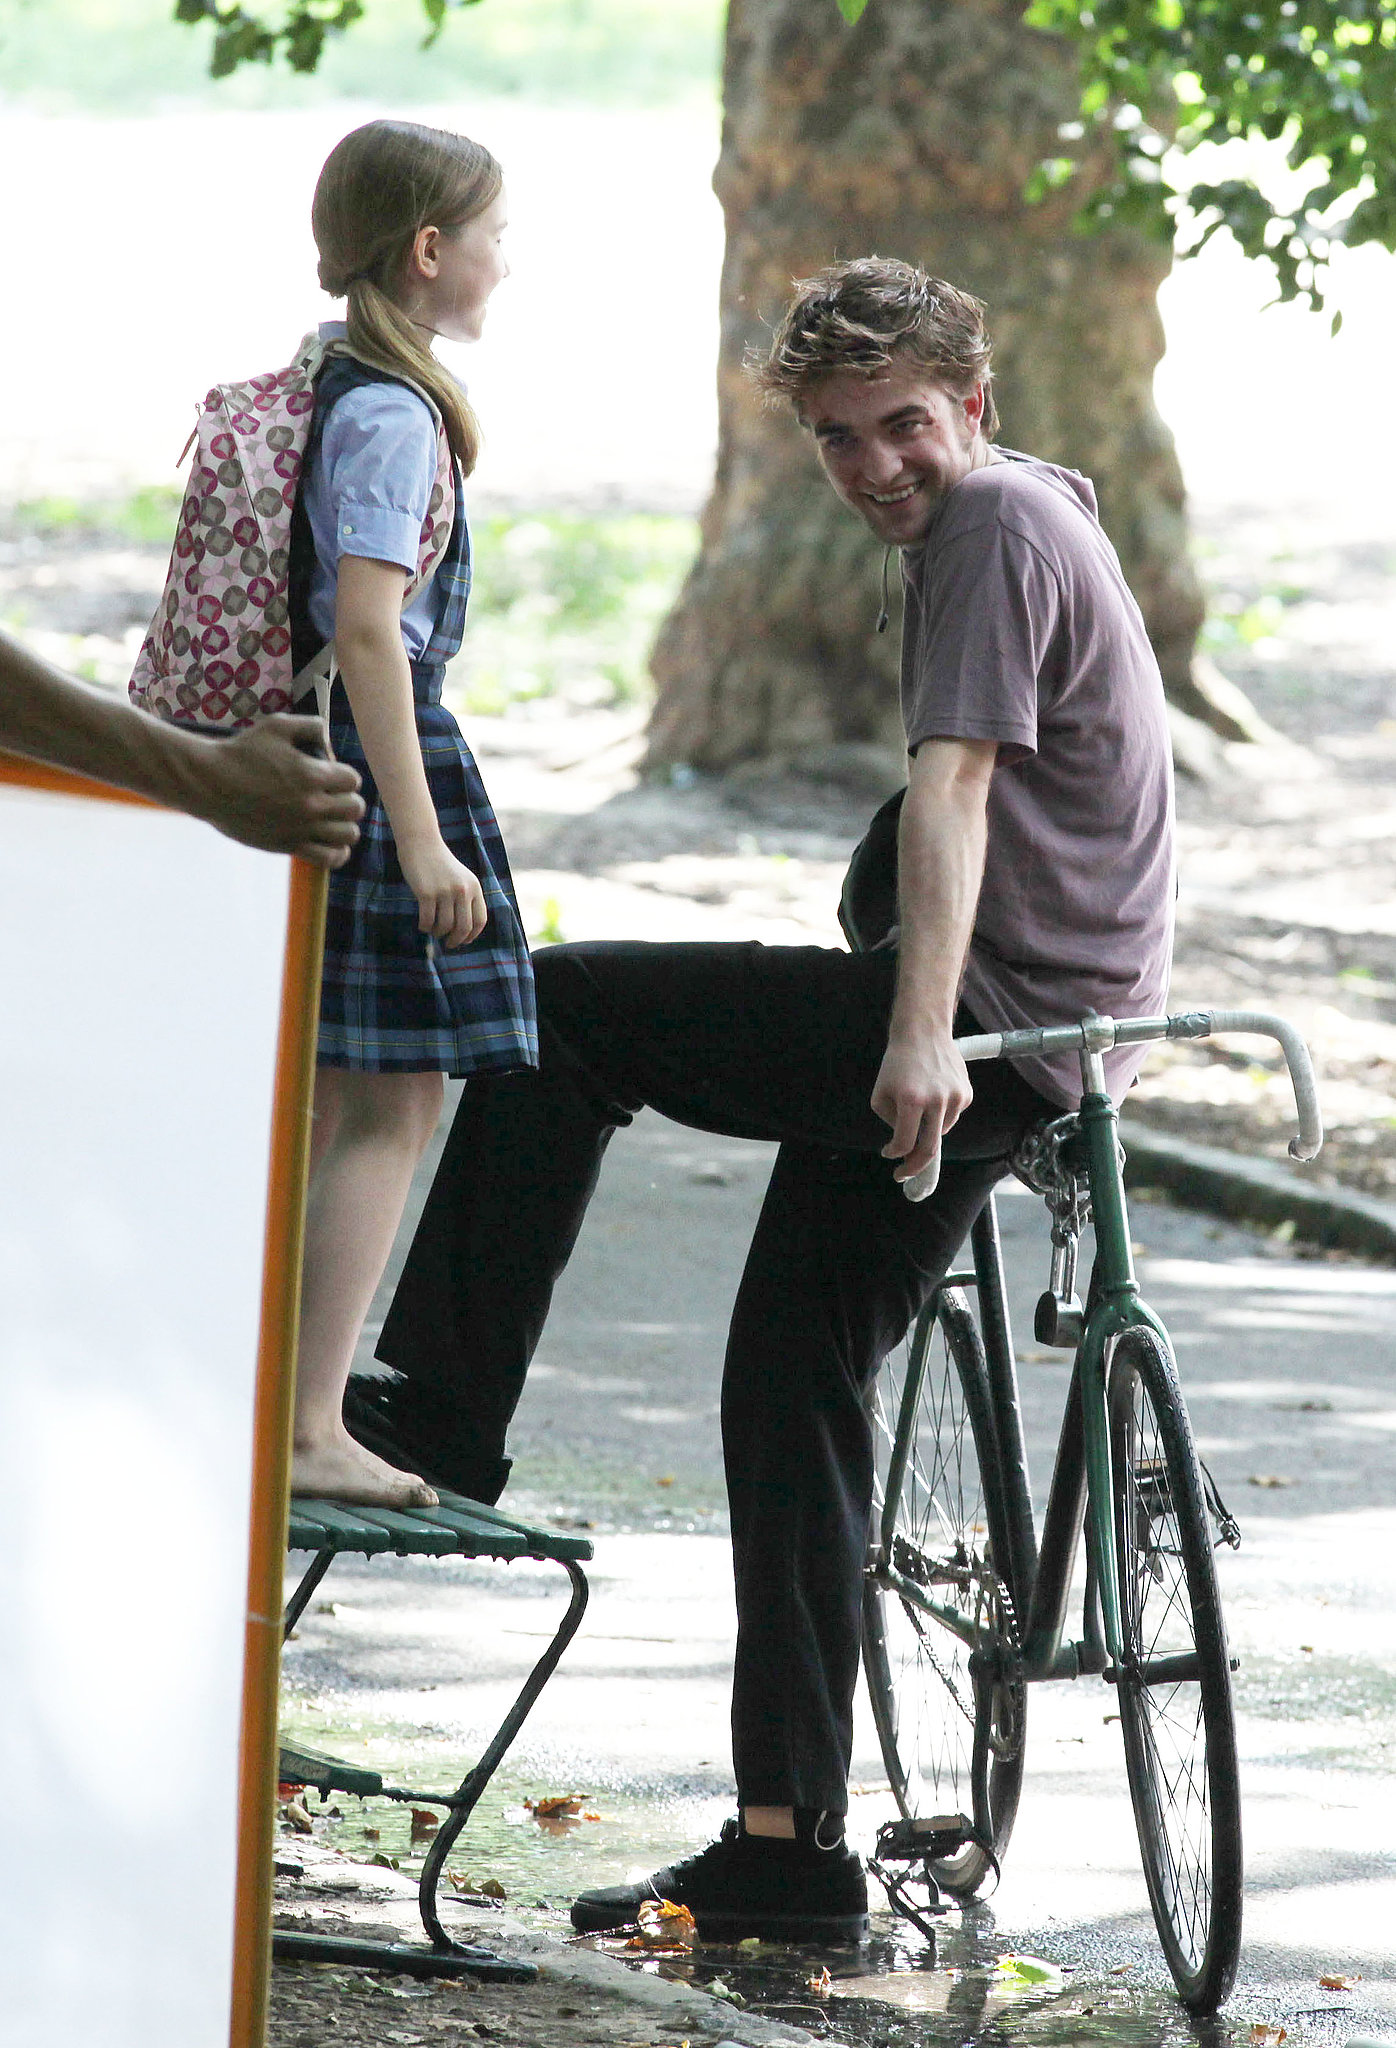 In June 2009, Robert Pattinson sat on a bike while filming Remember Me in NYC.